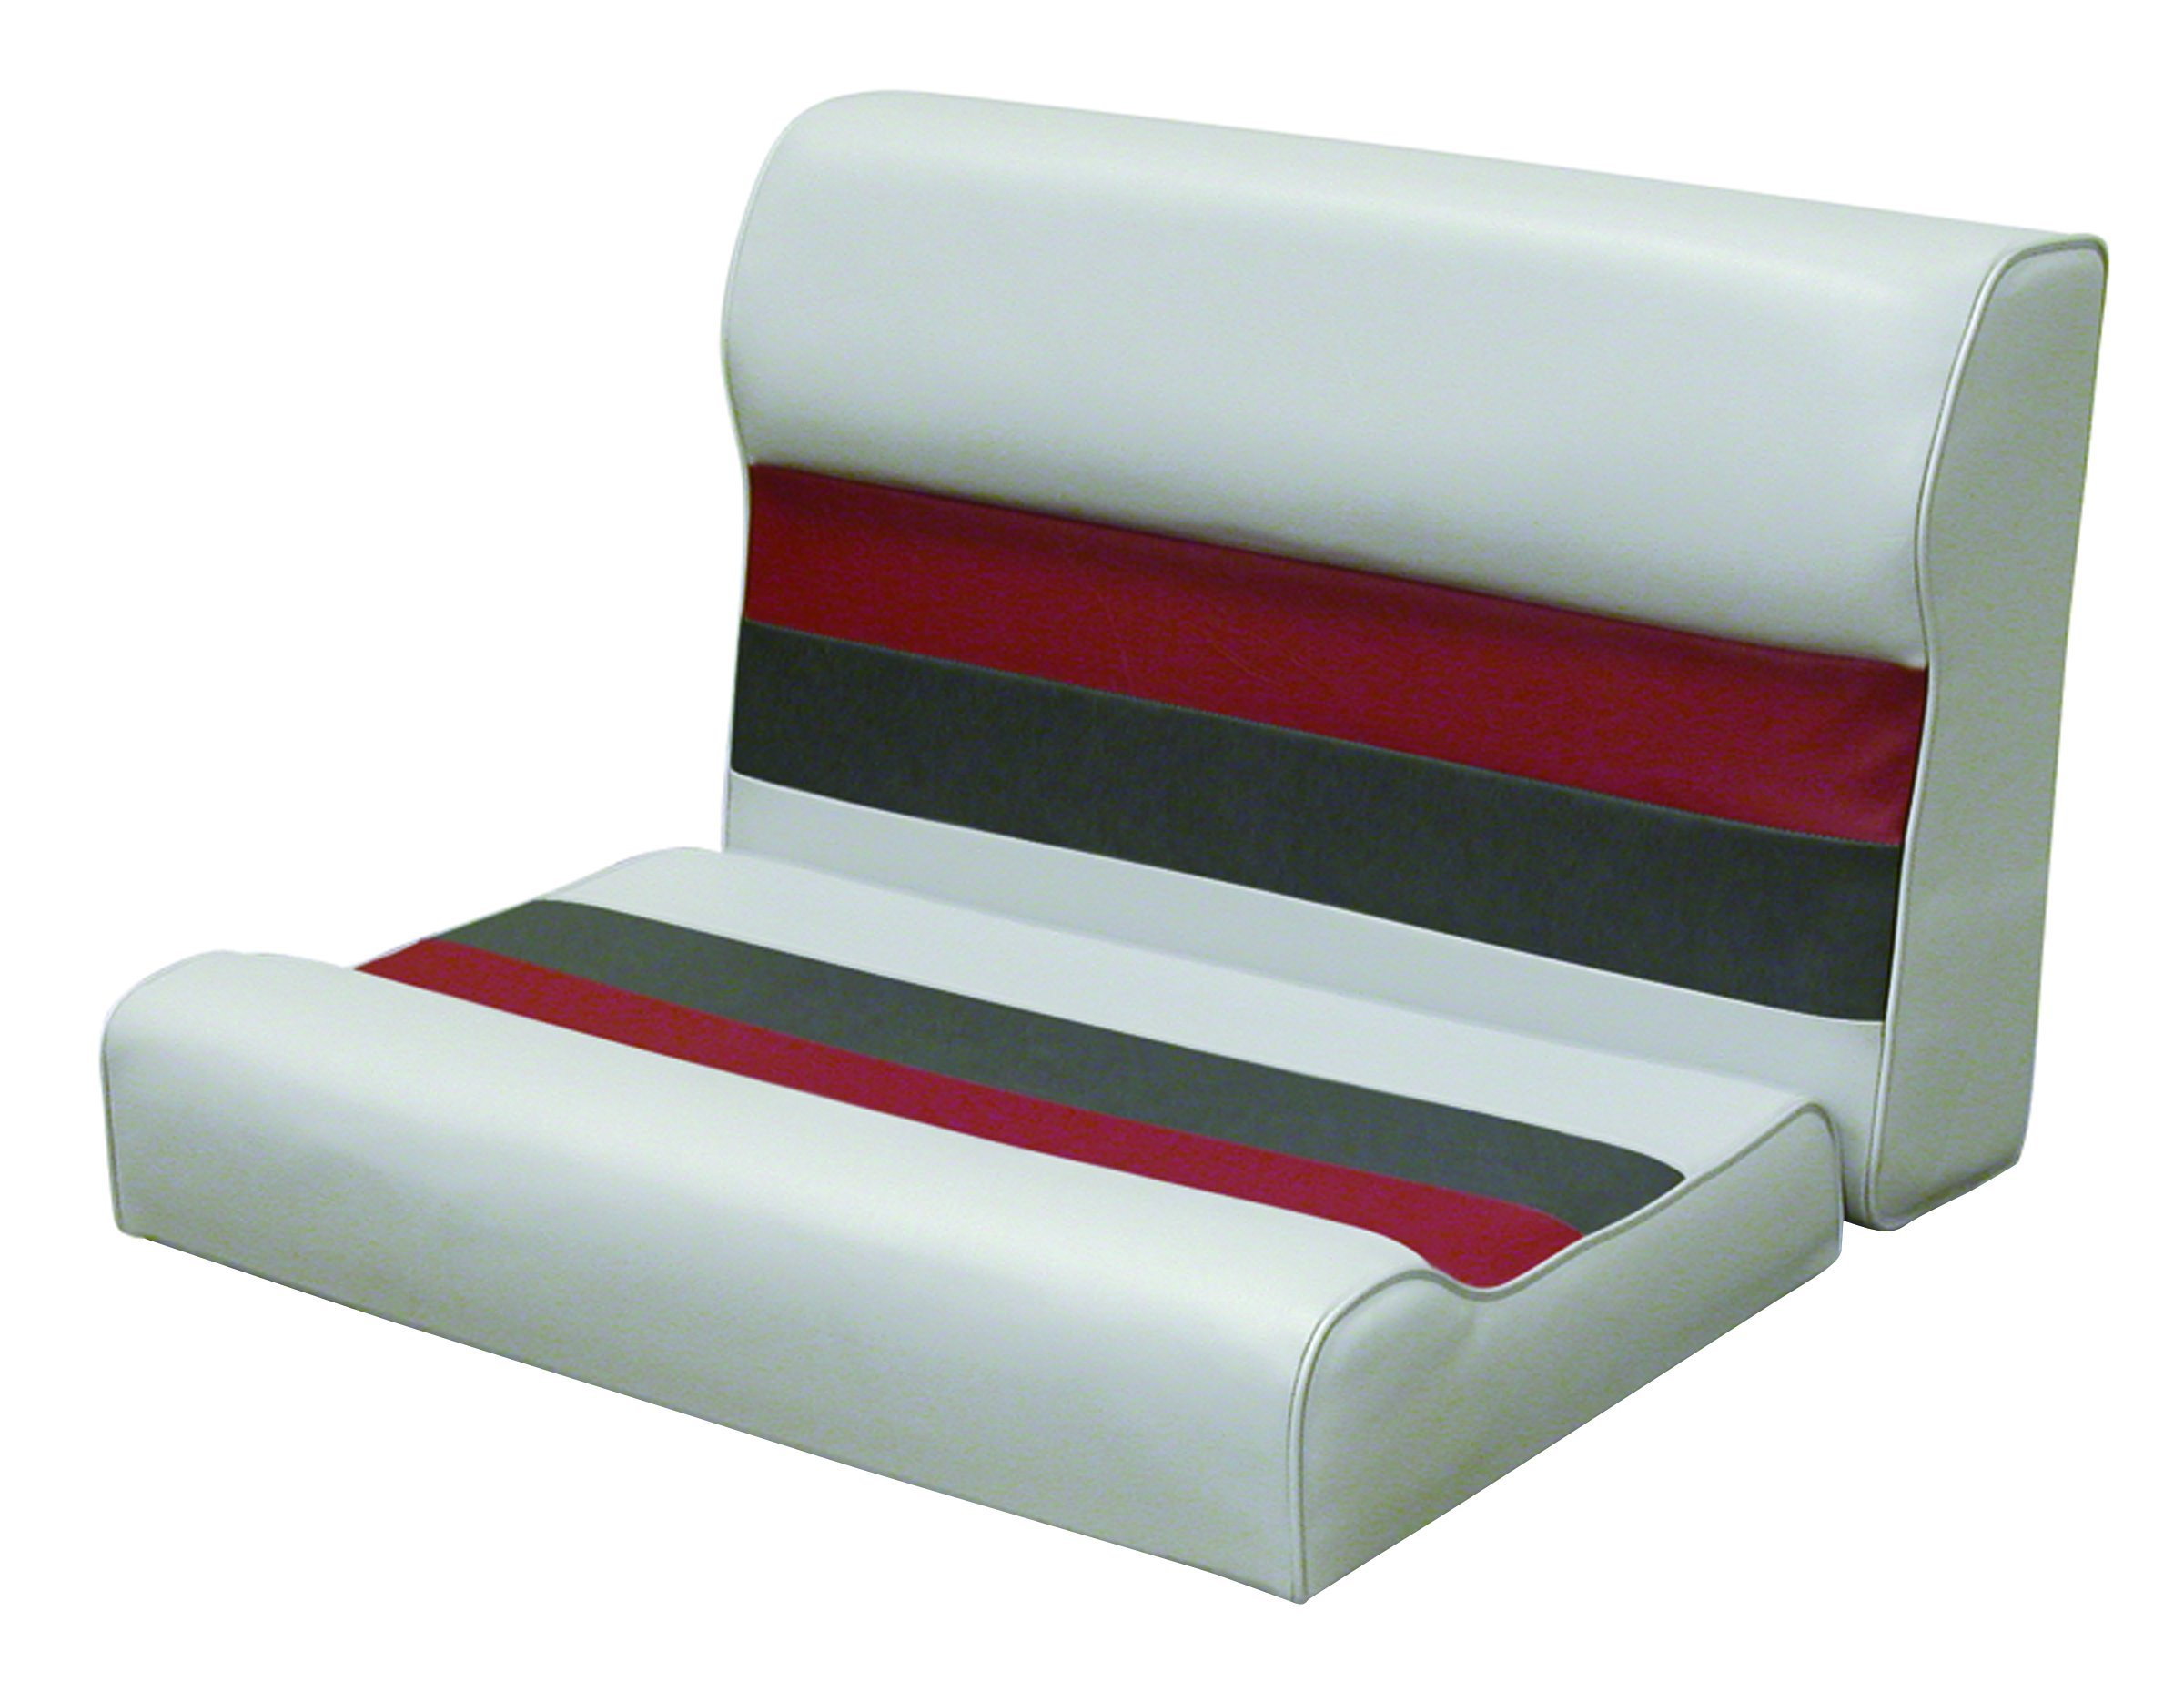 Wise 8WD95-1012 28'' Pontoon Bench Seat Cushion Only, Gray-Red-Charcoal; Requires #8WD95-1B-221 Base to Complete